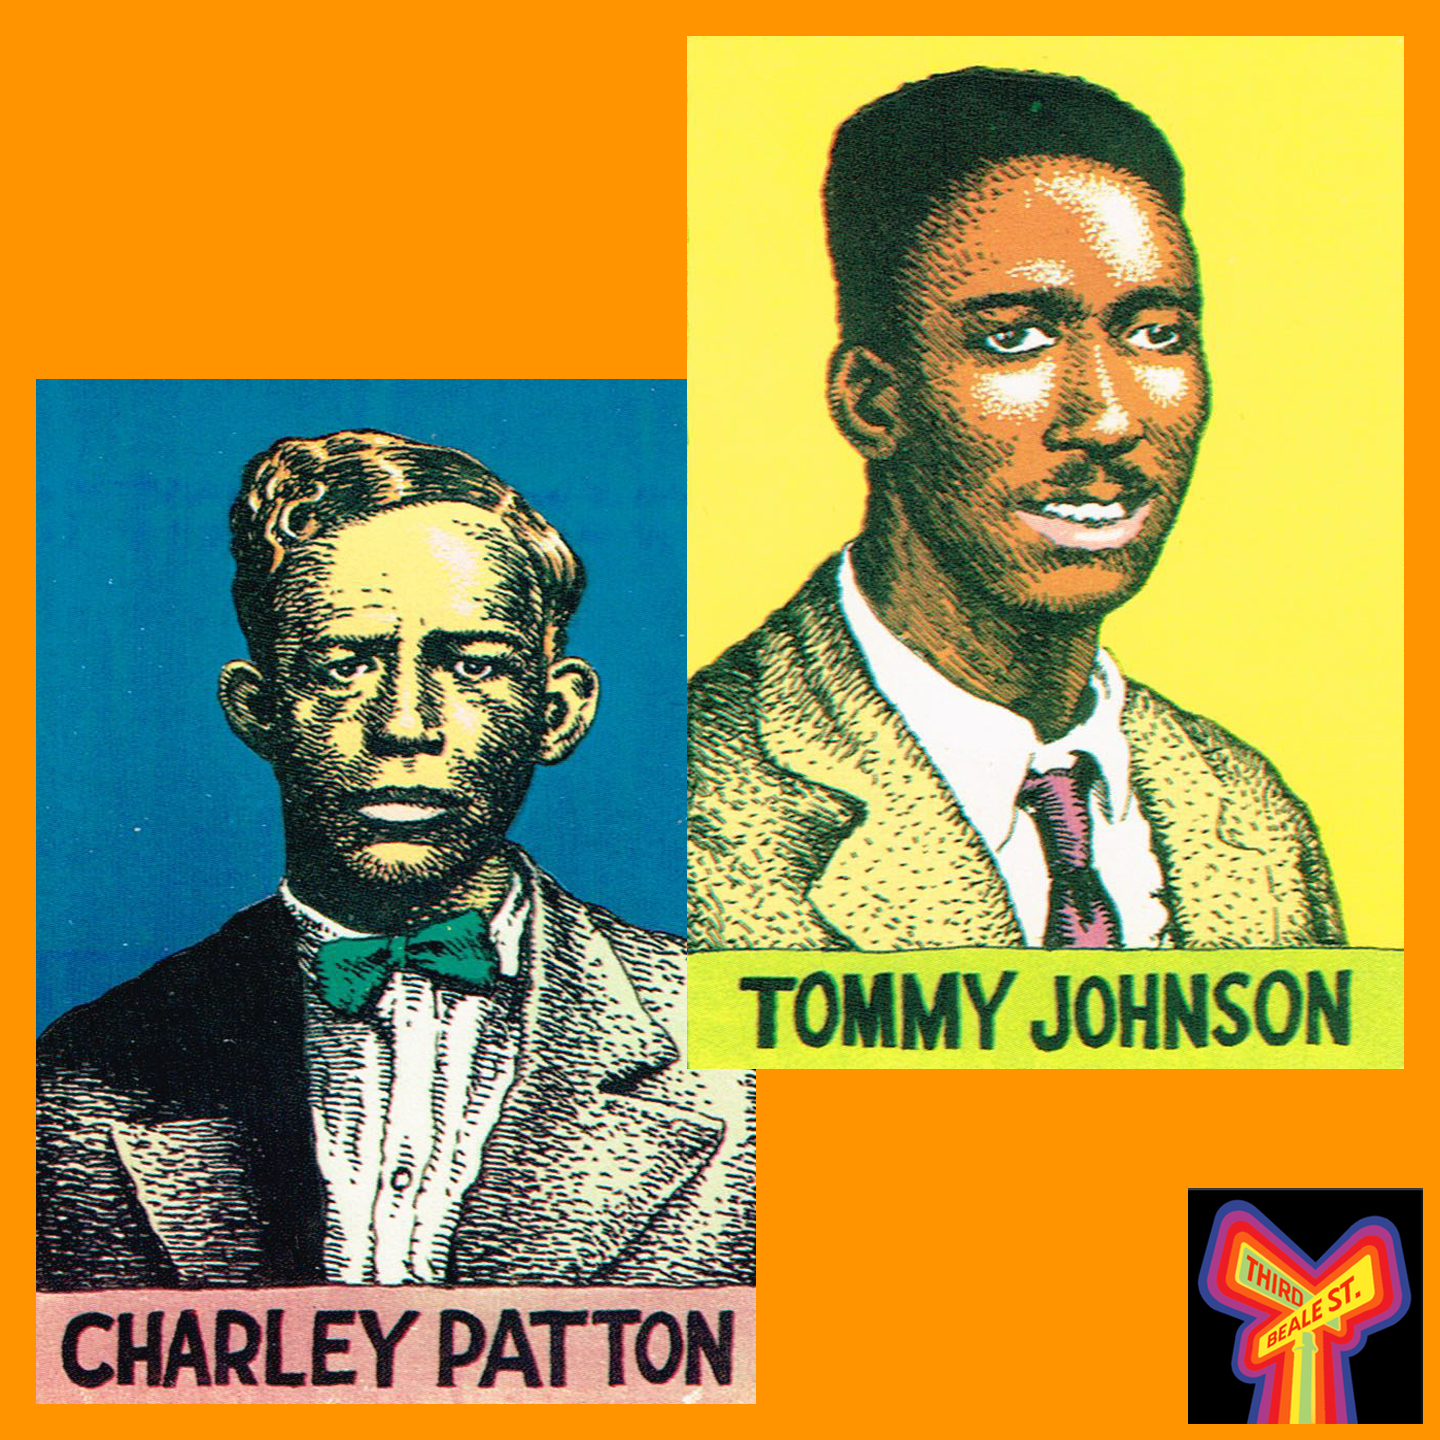 Caption: Pictured: Immortals of Mississippi blues, Charley Patton and Tommy Johnson. Illustrations by R. Crumb.